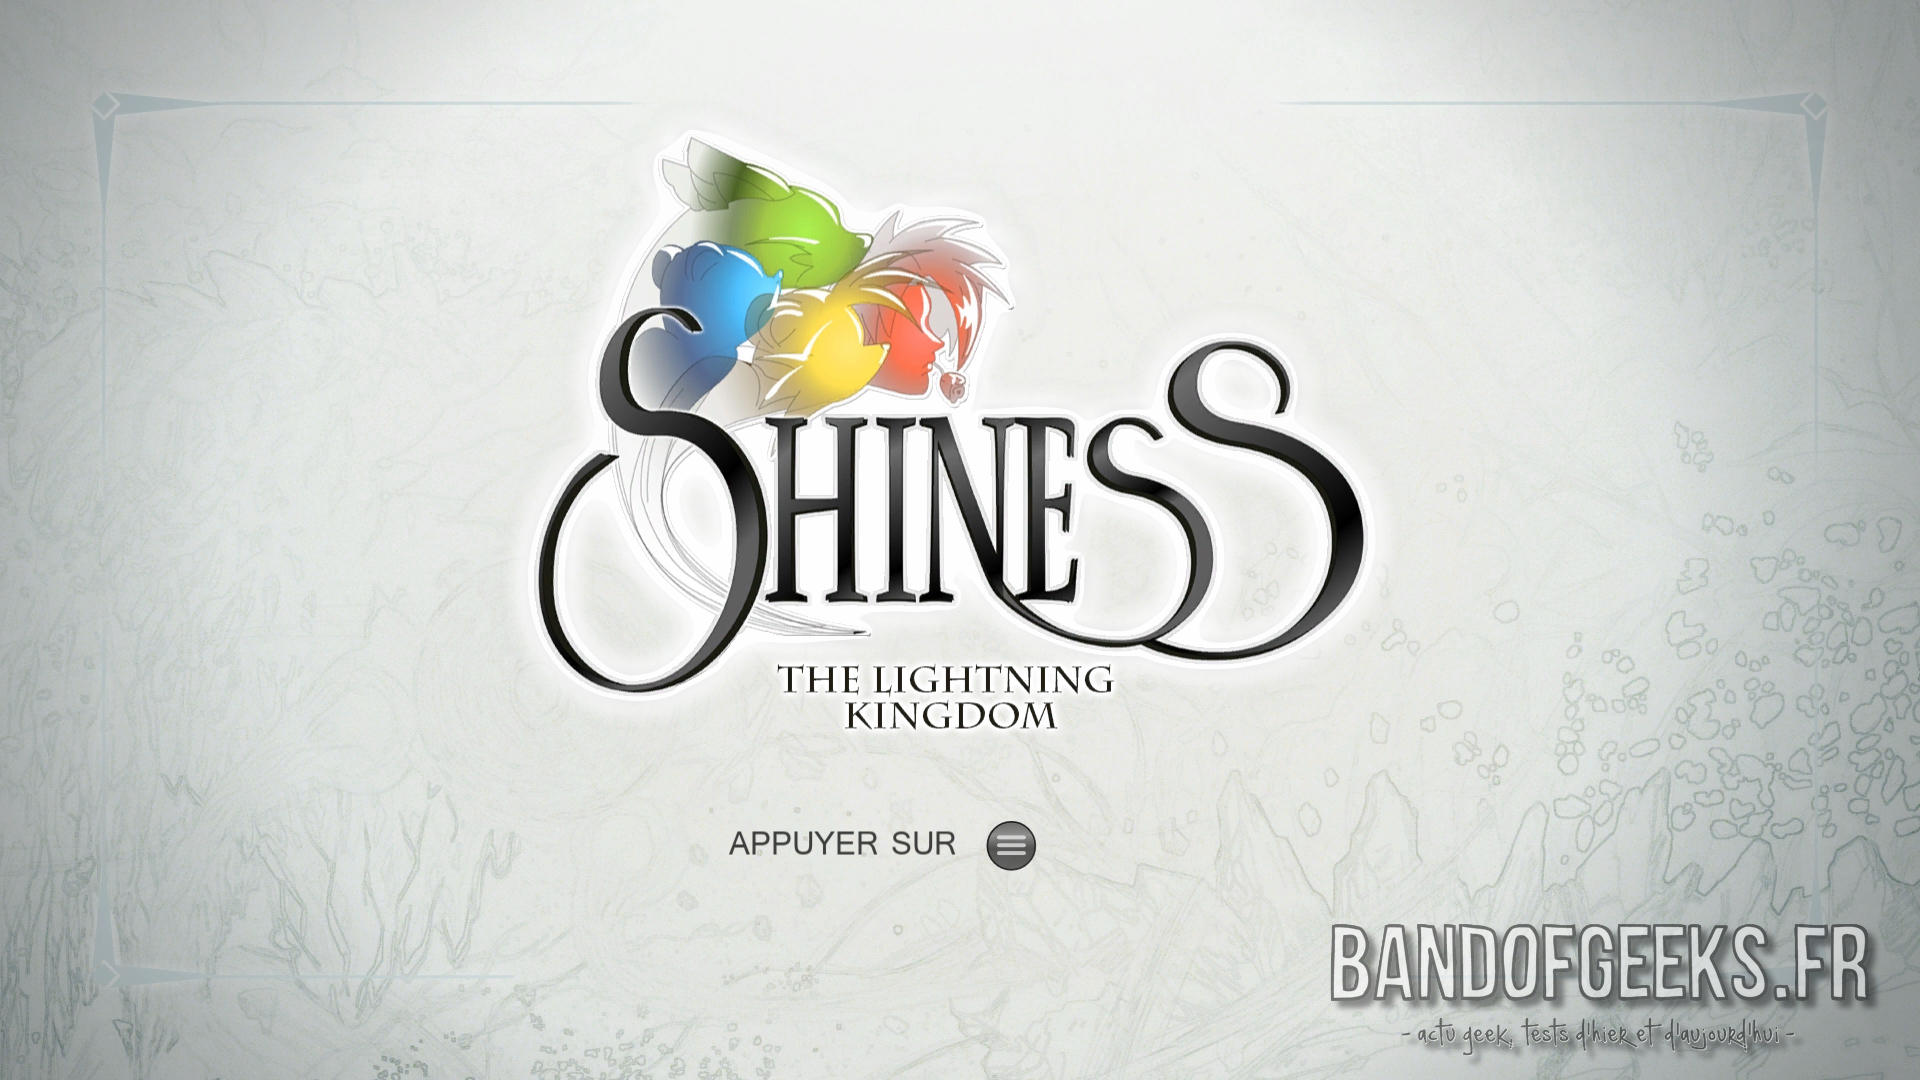 Shiness - The Lightning Kingdom écran titre Xbox One